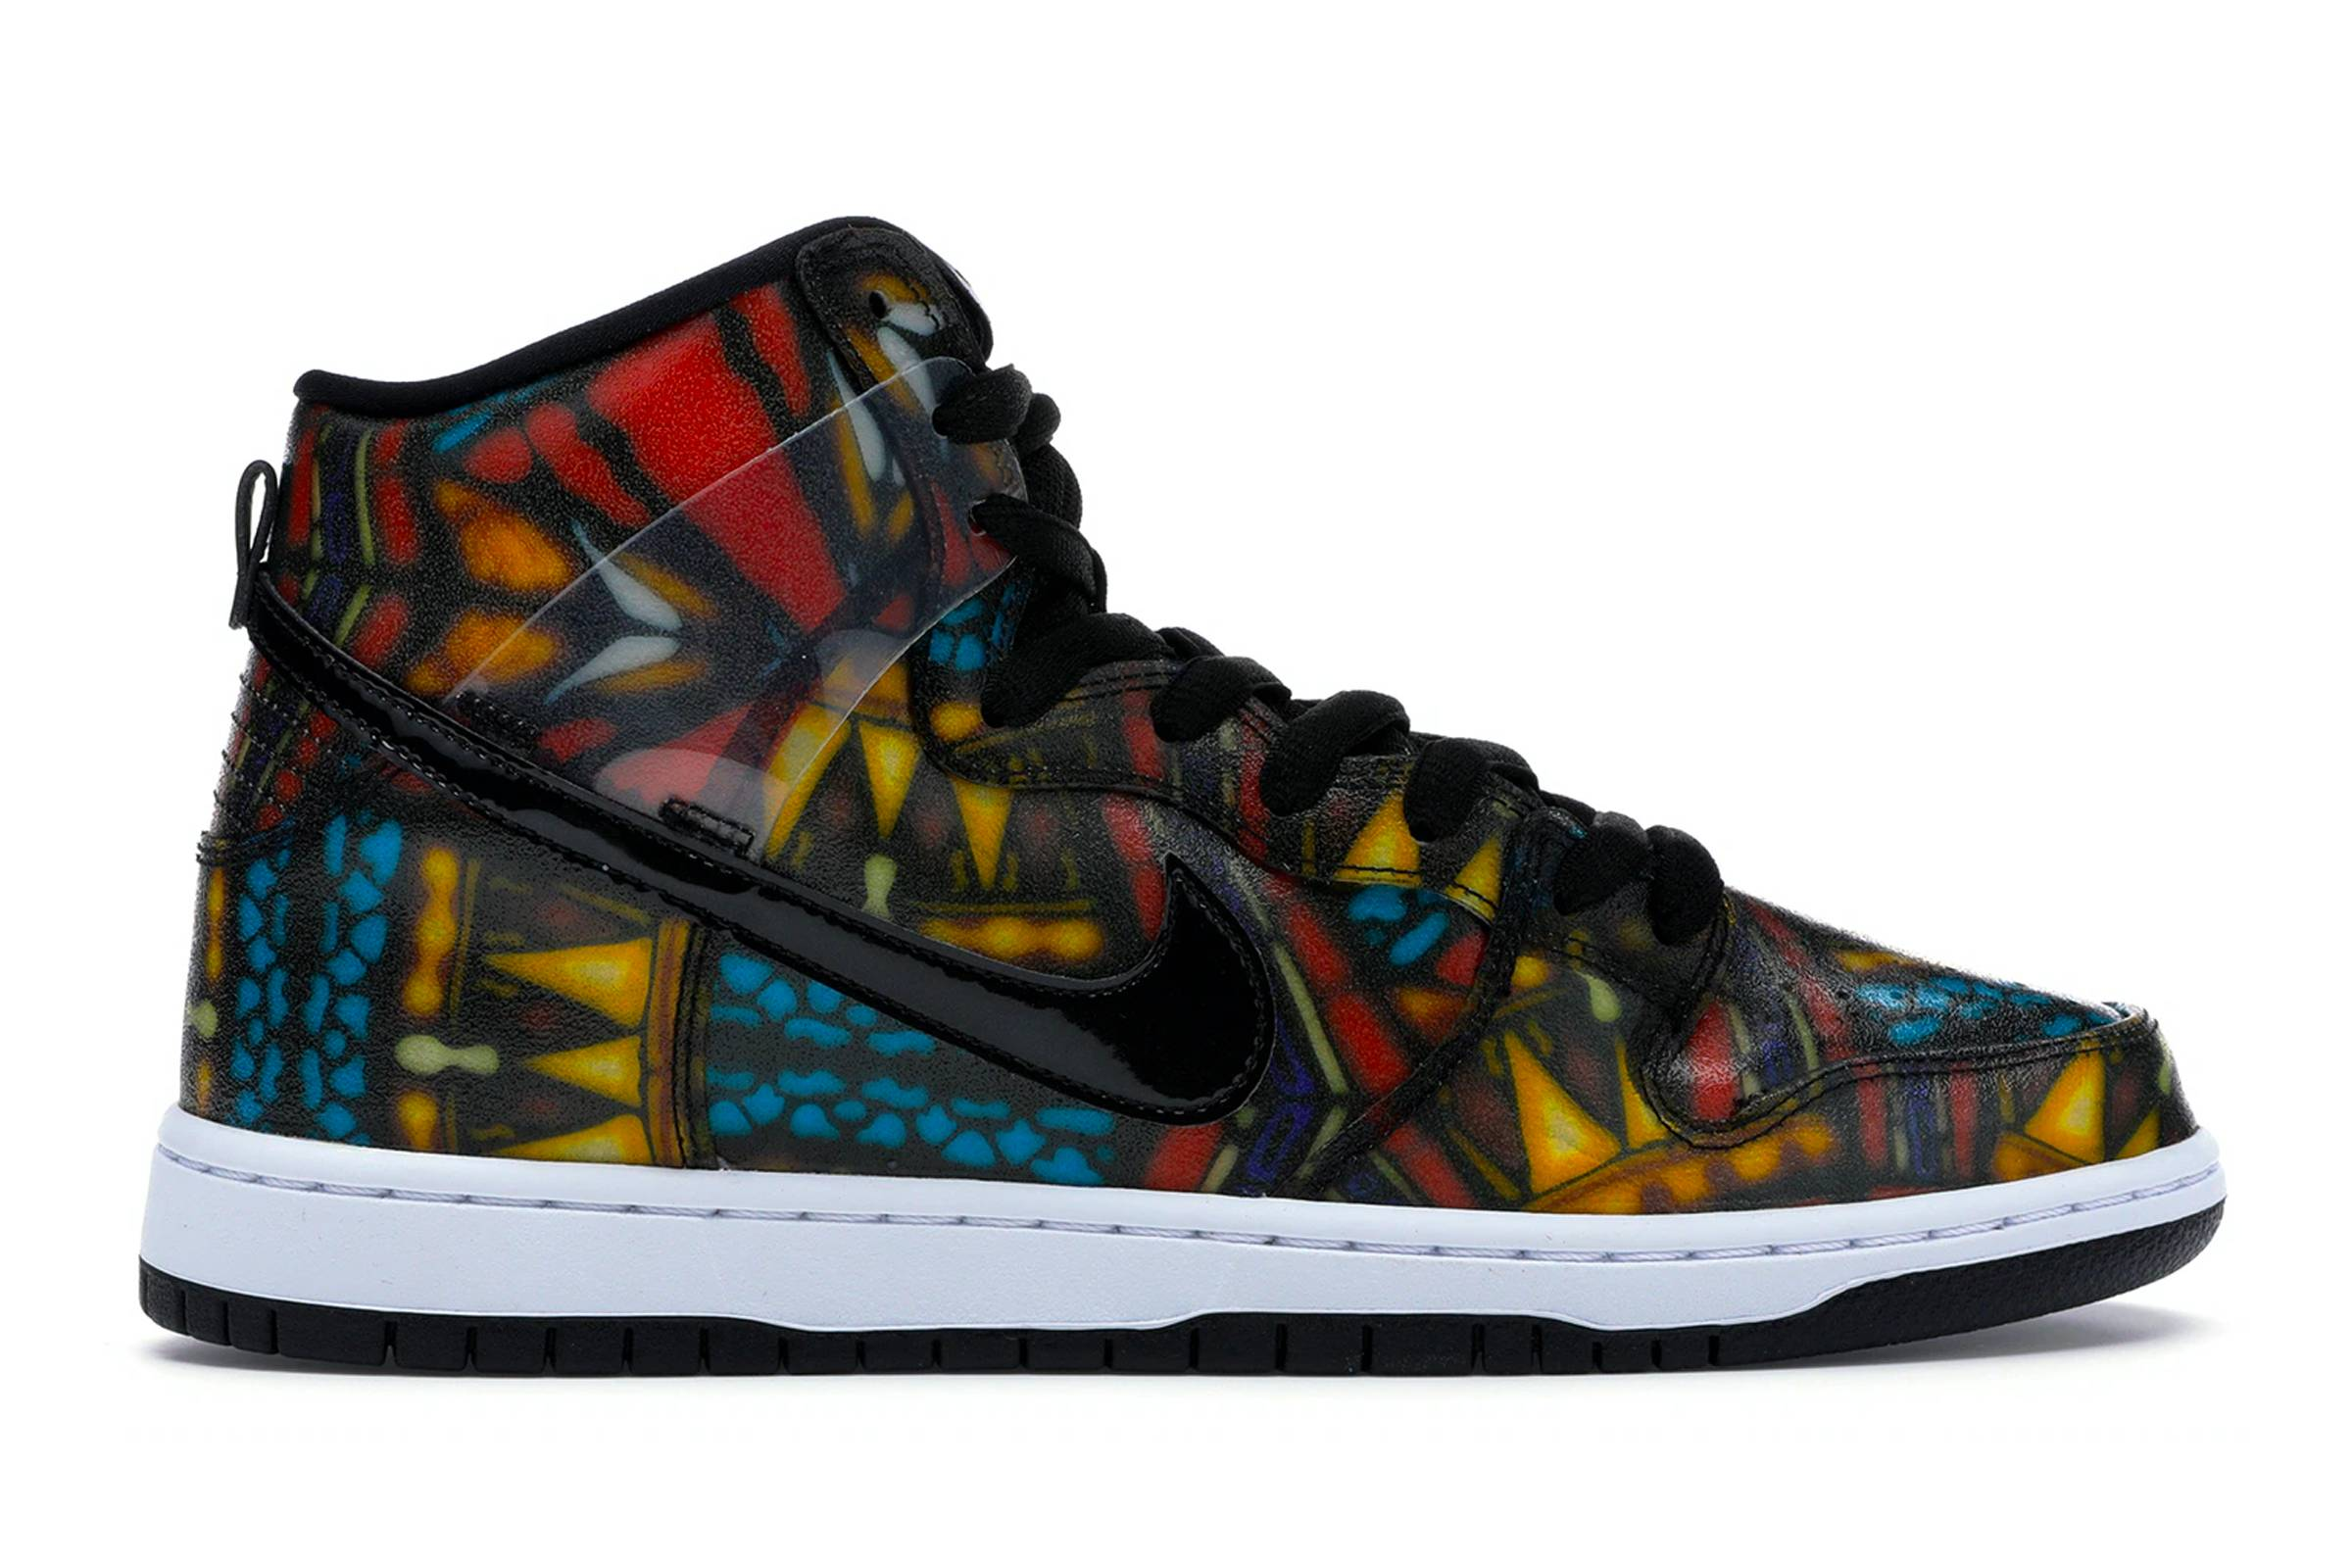 """Concepts x Nike SB Dunk High """"Stained Glass"""""""